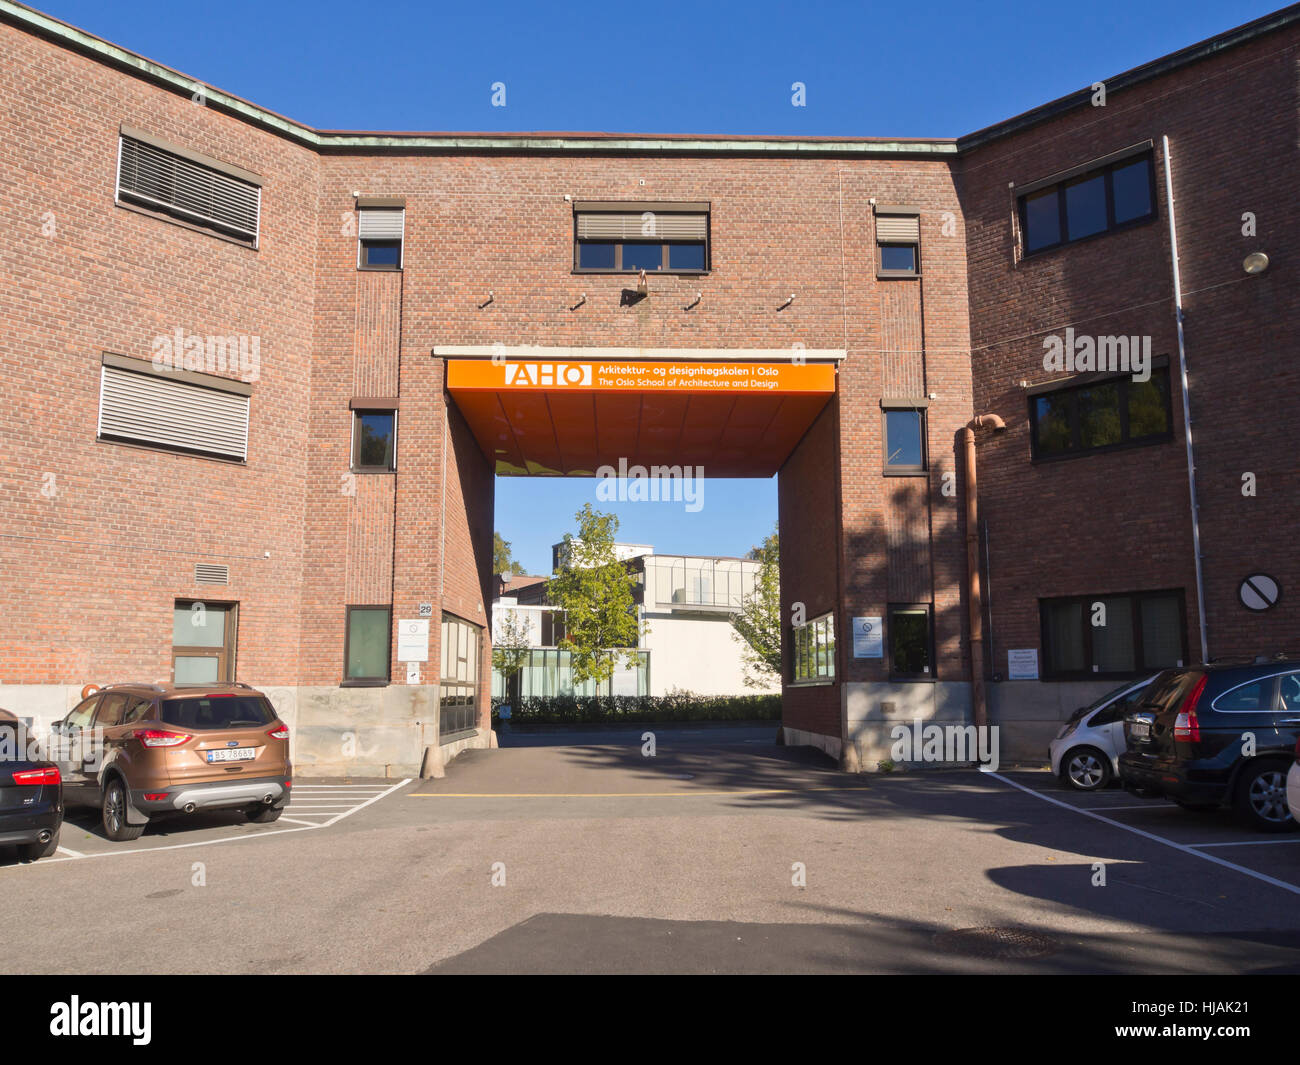 The Oslo school of architecture and design, main entrance gate, centrally placed in the Norwegian capital Stock Photo